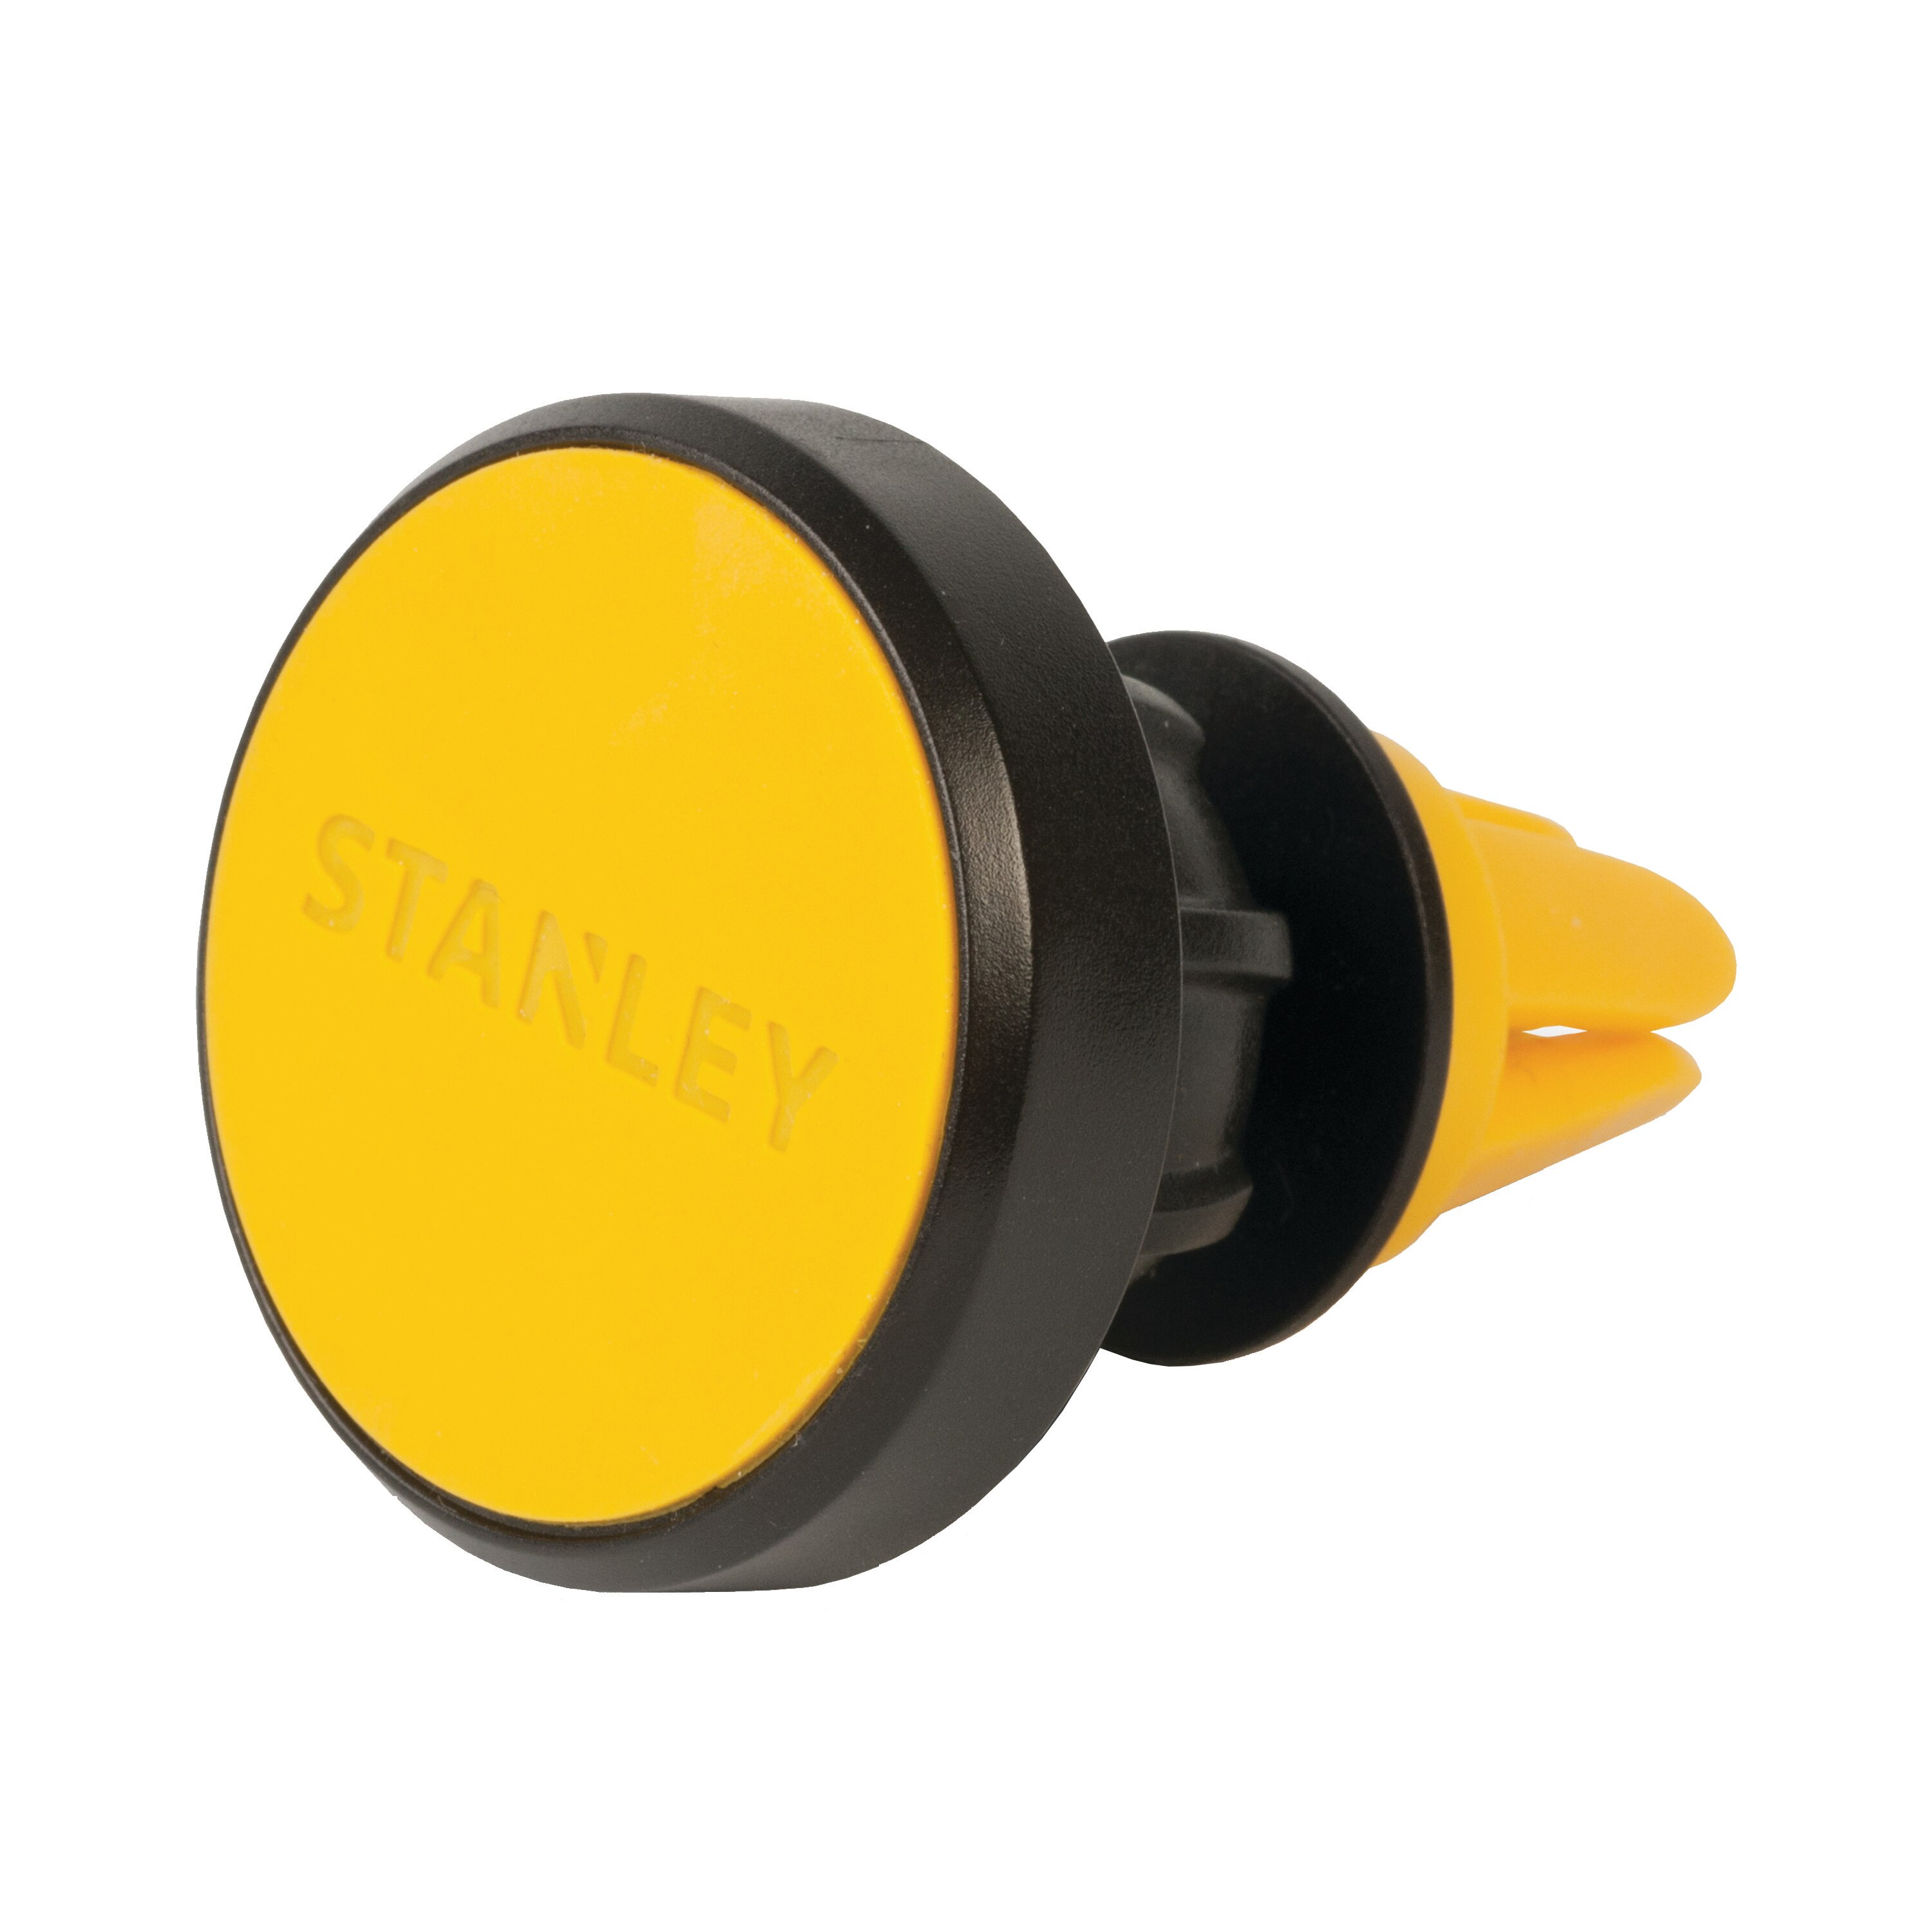 Stanley Tools - Magnetic Car Vent Phone Mount - 2049525ST2